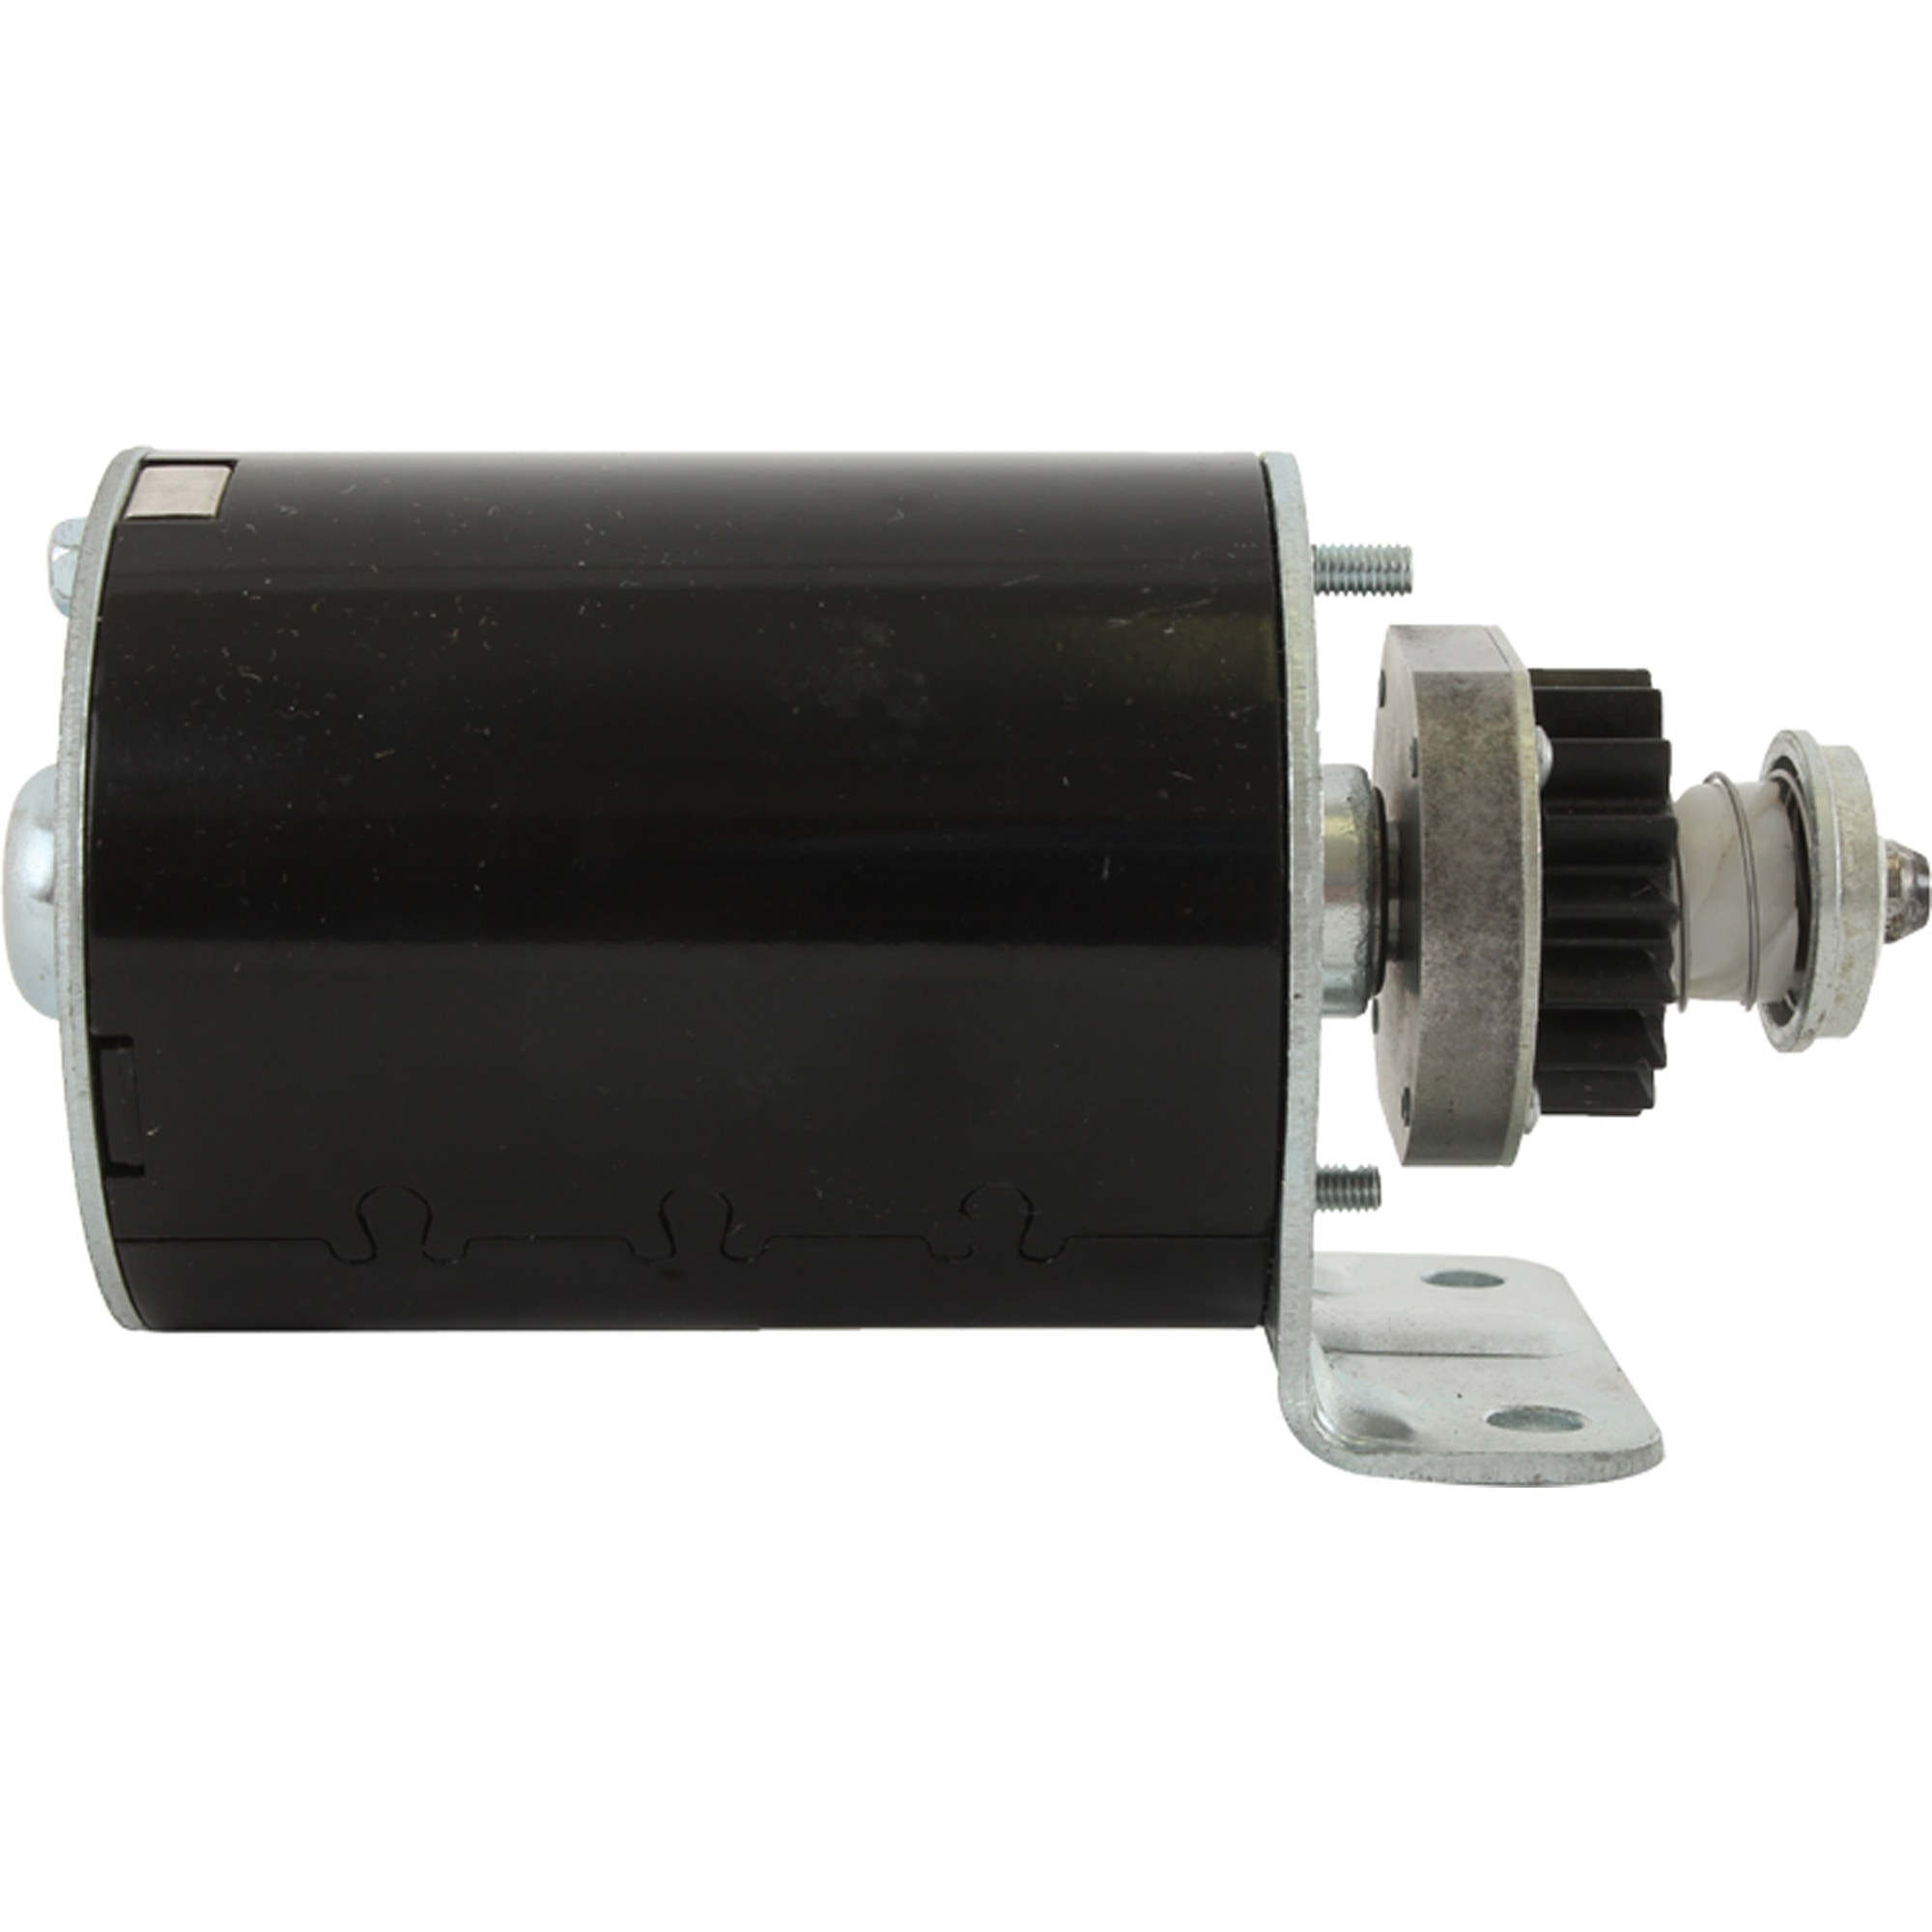 Replacement Starter For John Deere Briggs /& Stratton Cub Cadet Zero Turn Riding Lawn Mowers Tillers 390838 391423 392749 AM122337